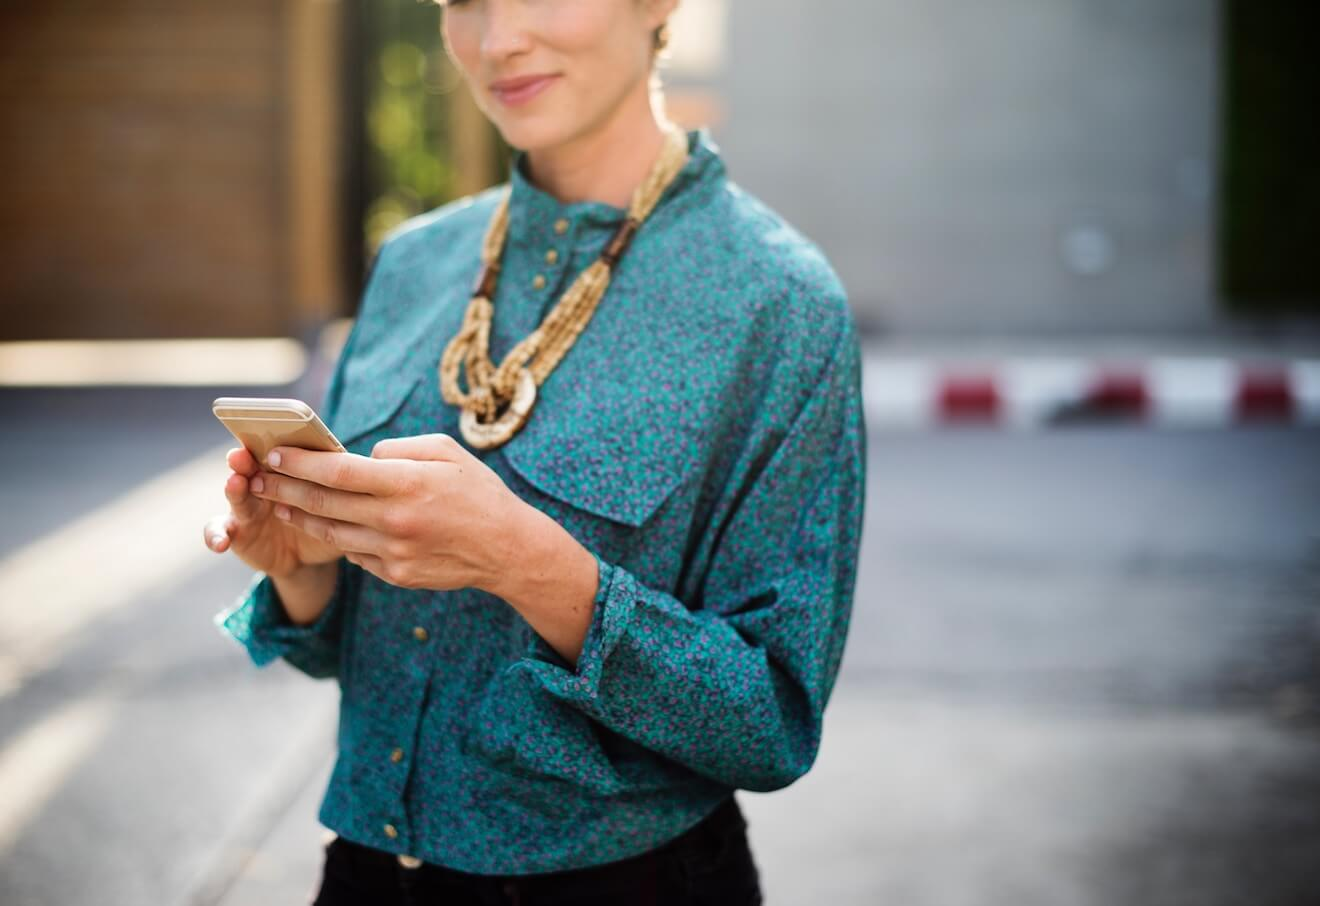 Woman in teal shirt smiling while using her phone